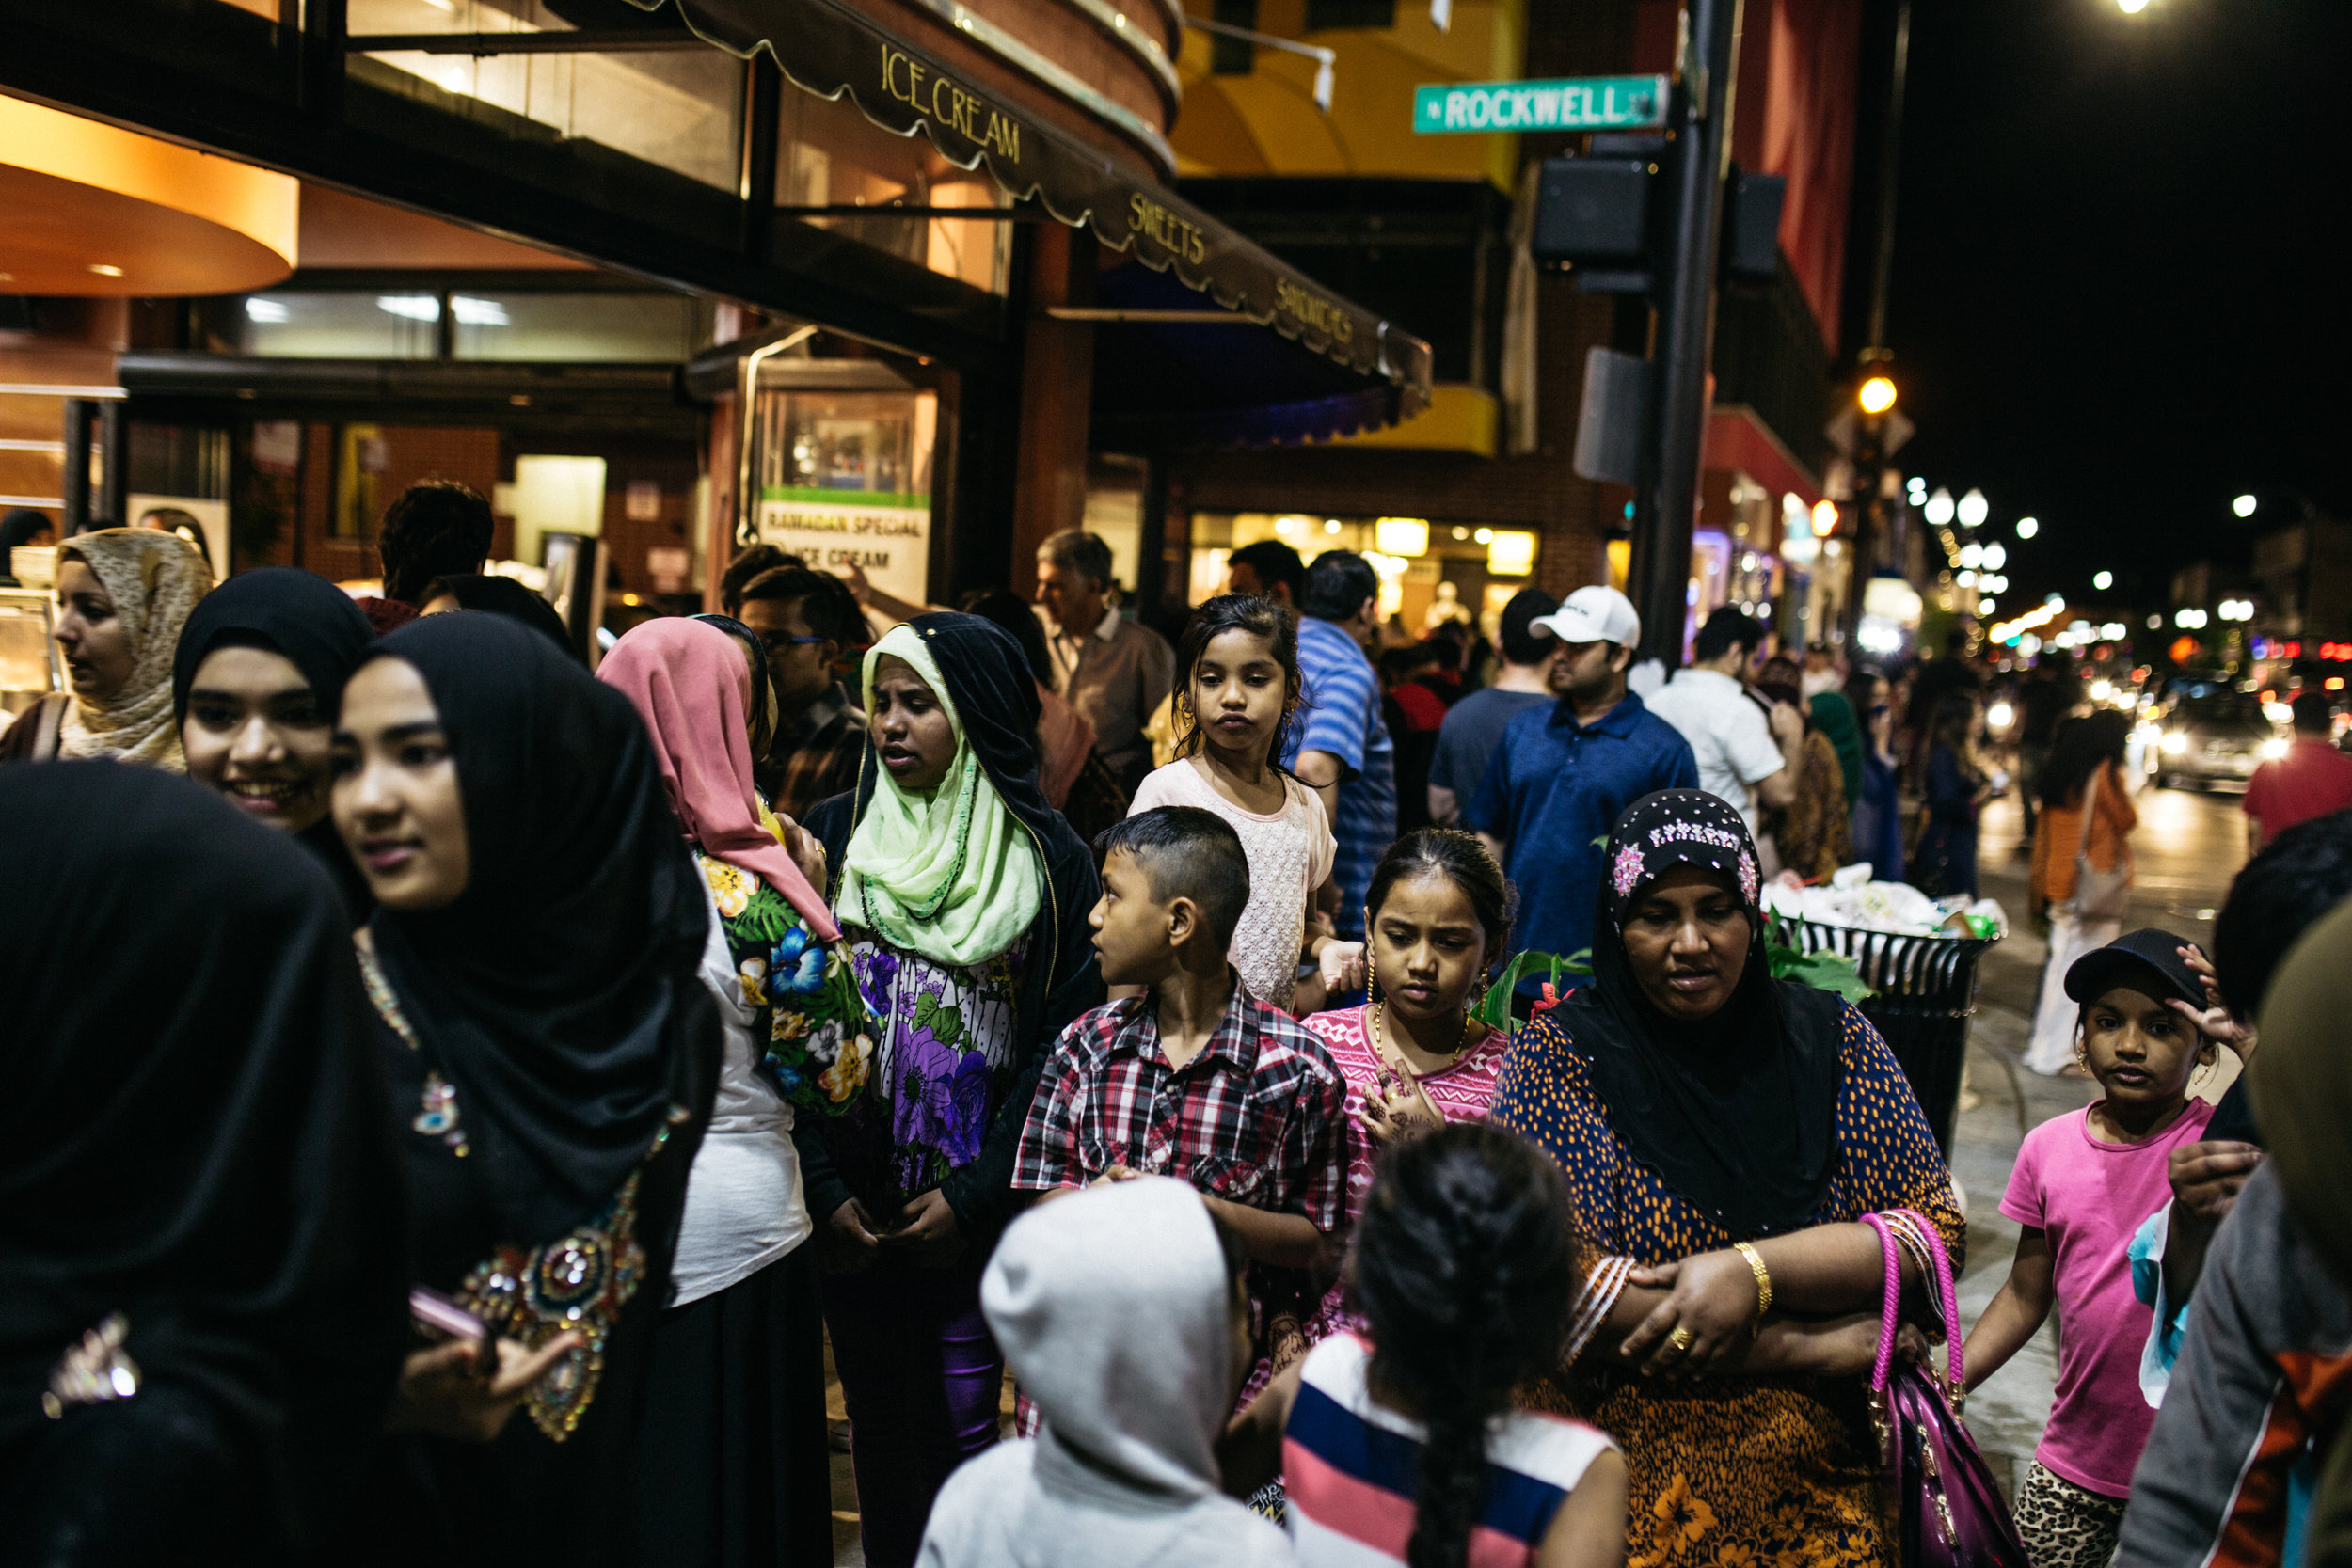 Rohingya women and children join other muslim neighbors to fill Devon Avenue in celebration of Ramadan.